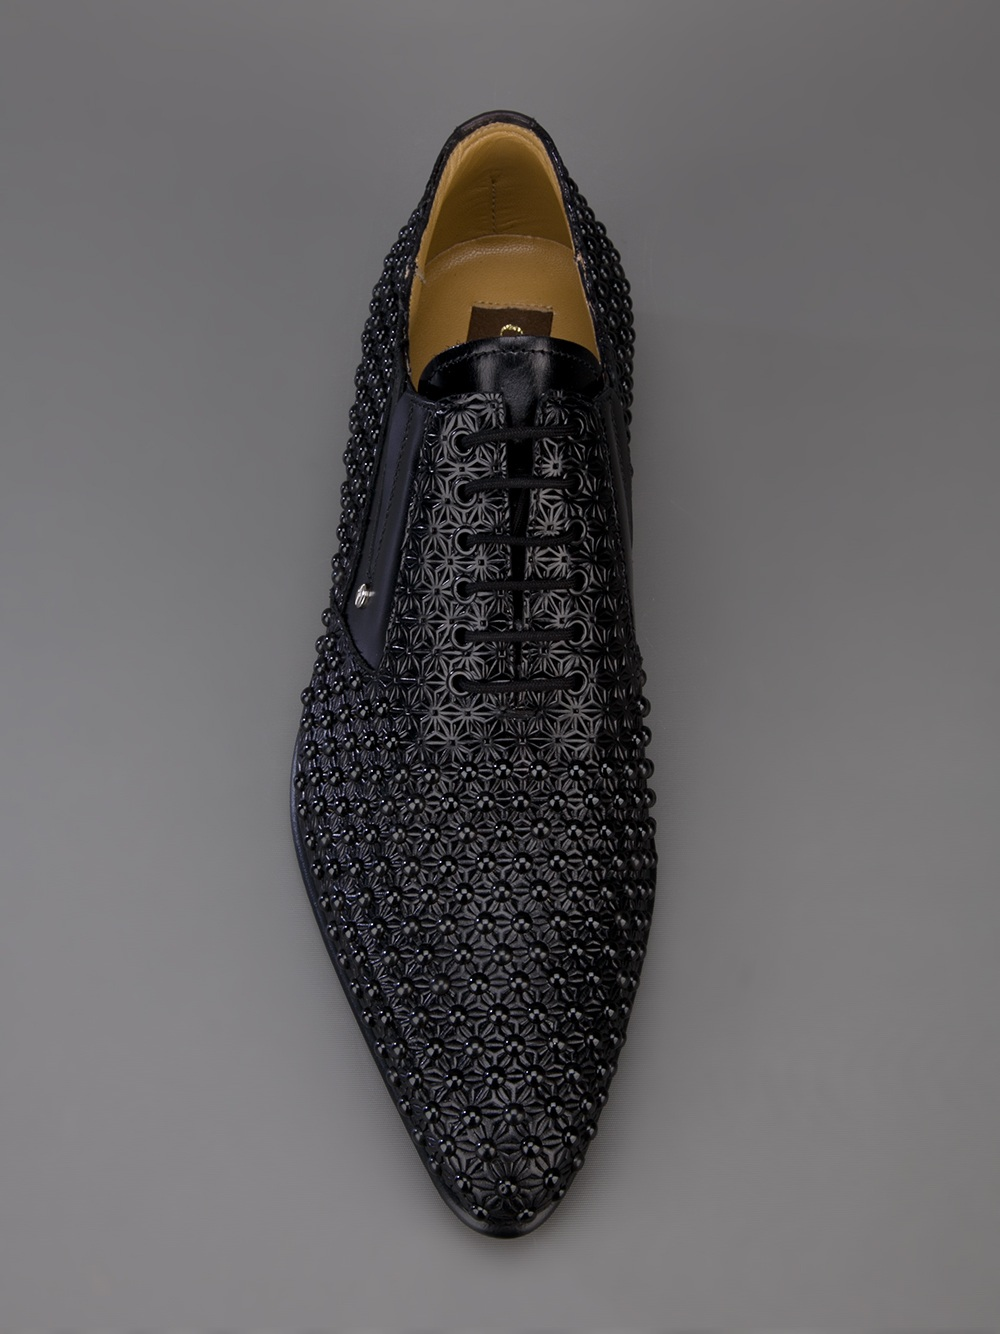 Lyst Cesare Paciotti Studded Lace Up Shoe In Black For Men